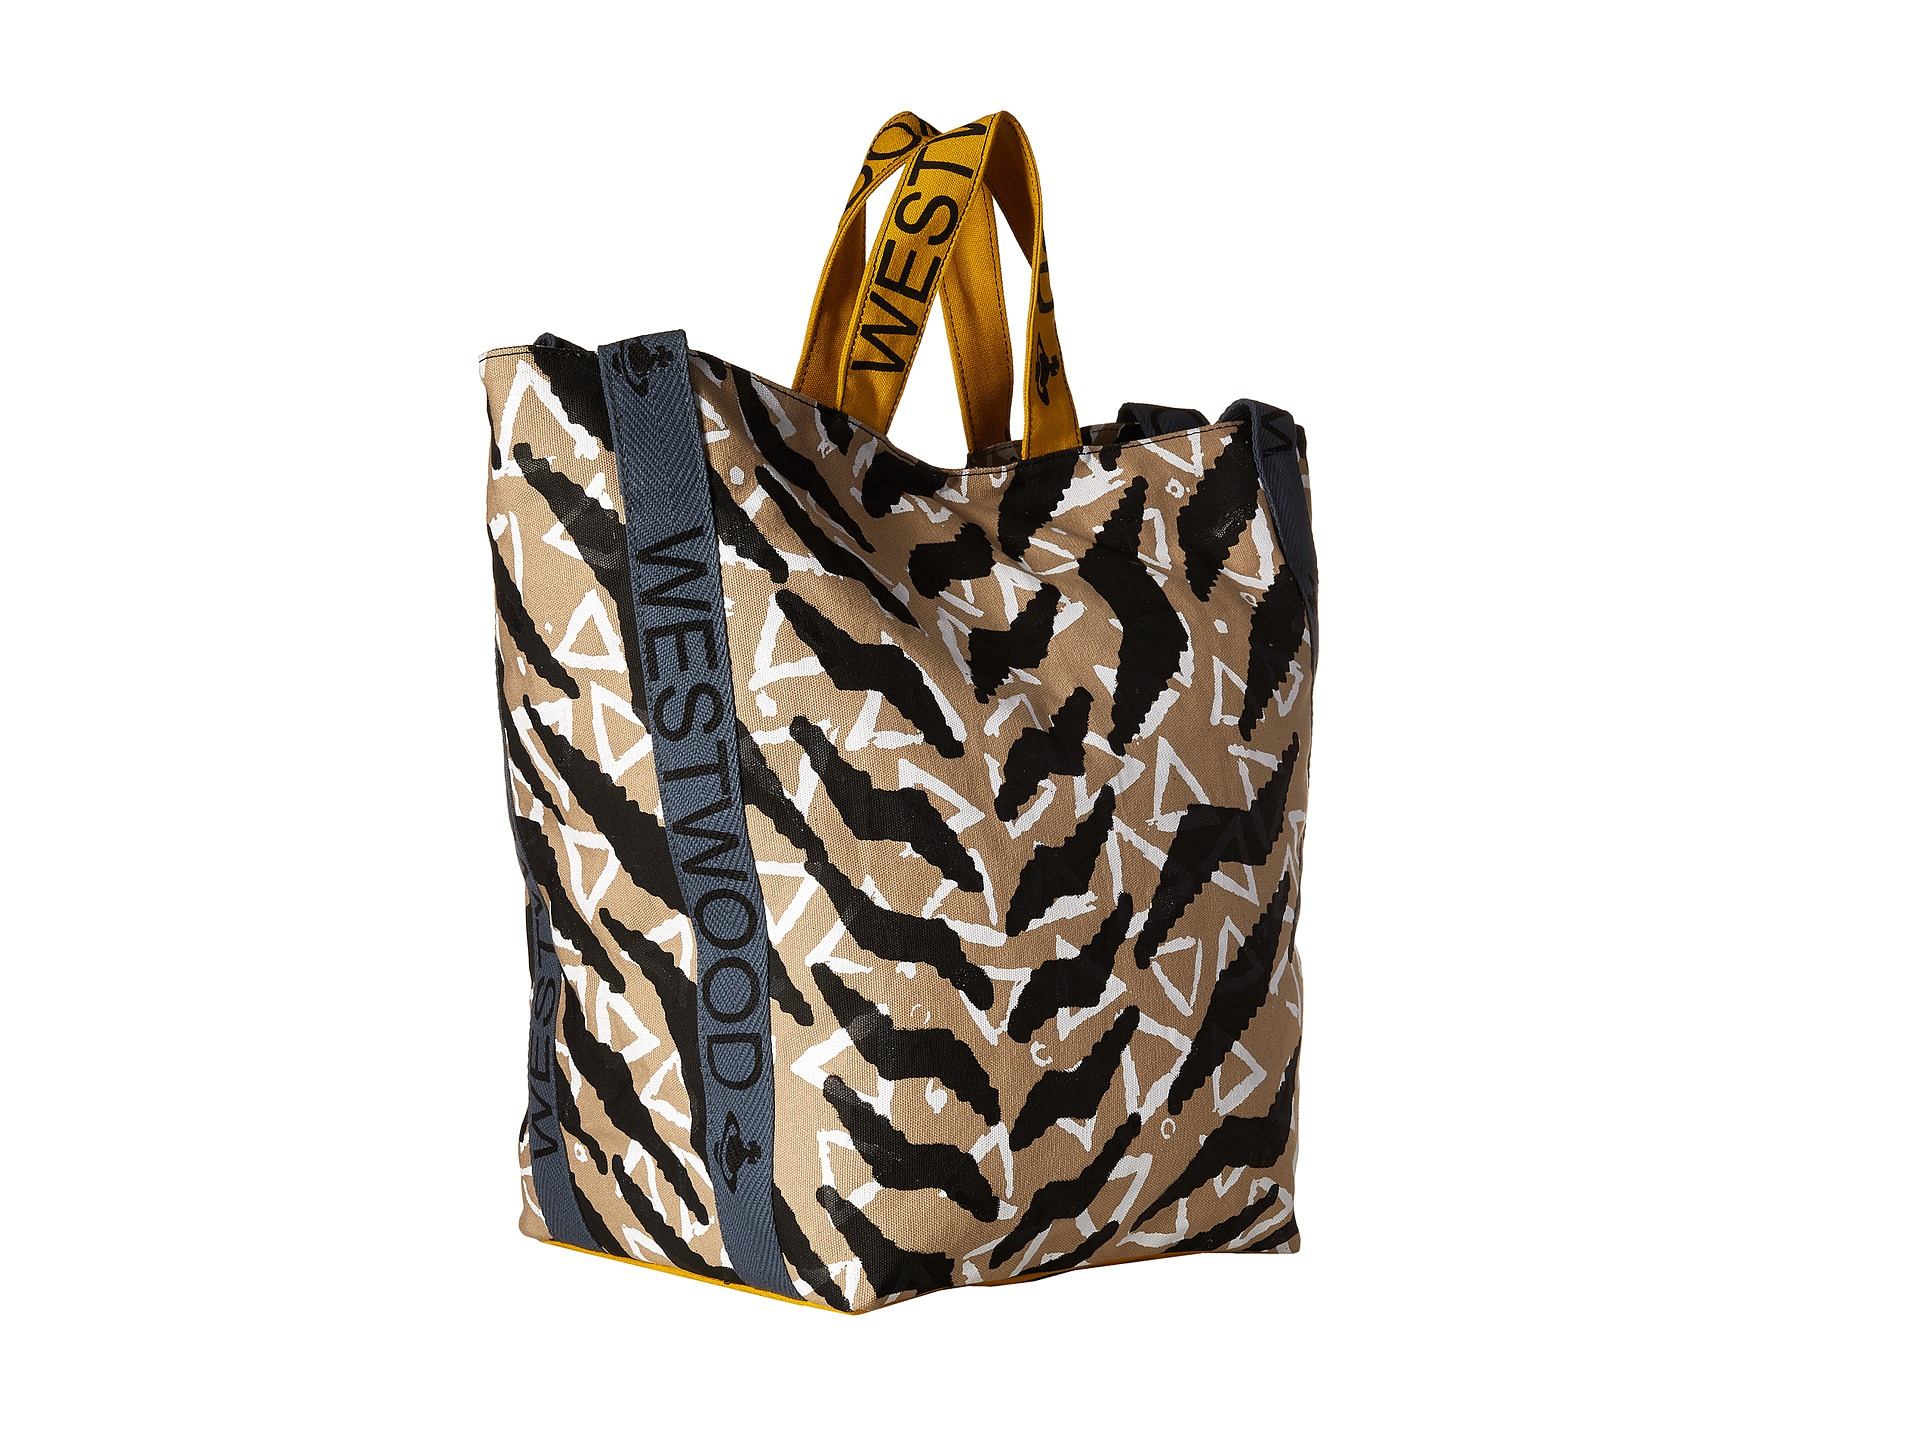 6a9dffa82d7 Vivienne Westwood Africa Tiger Triangle Runner Tote Bag in Gray - Lyst